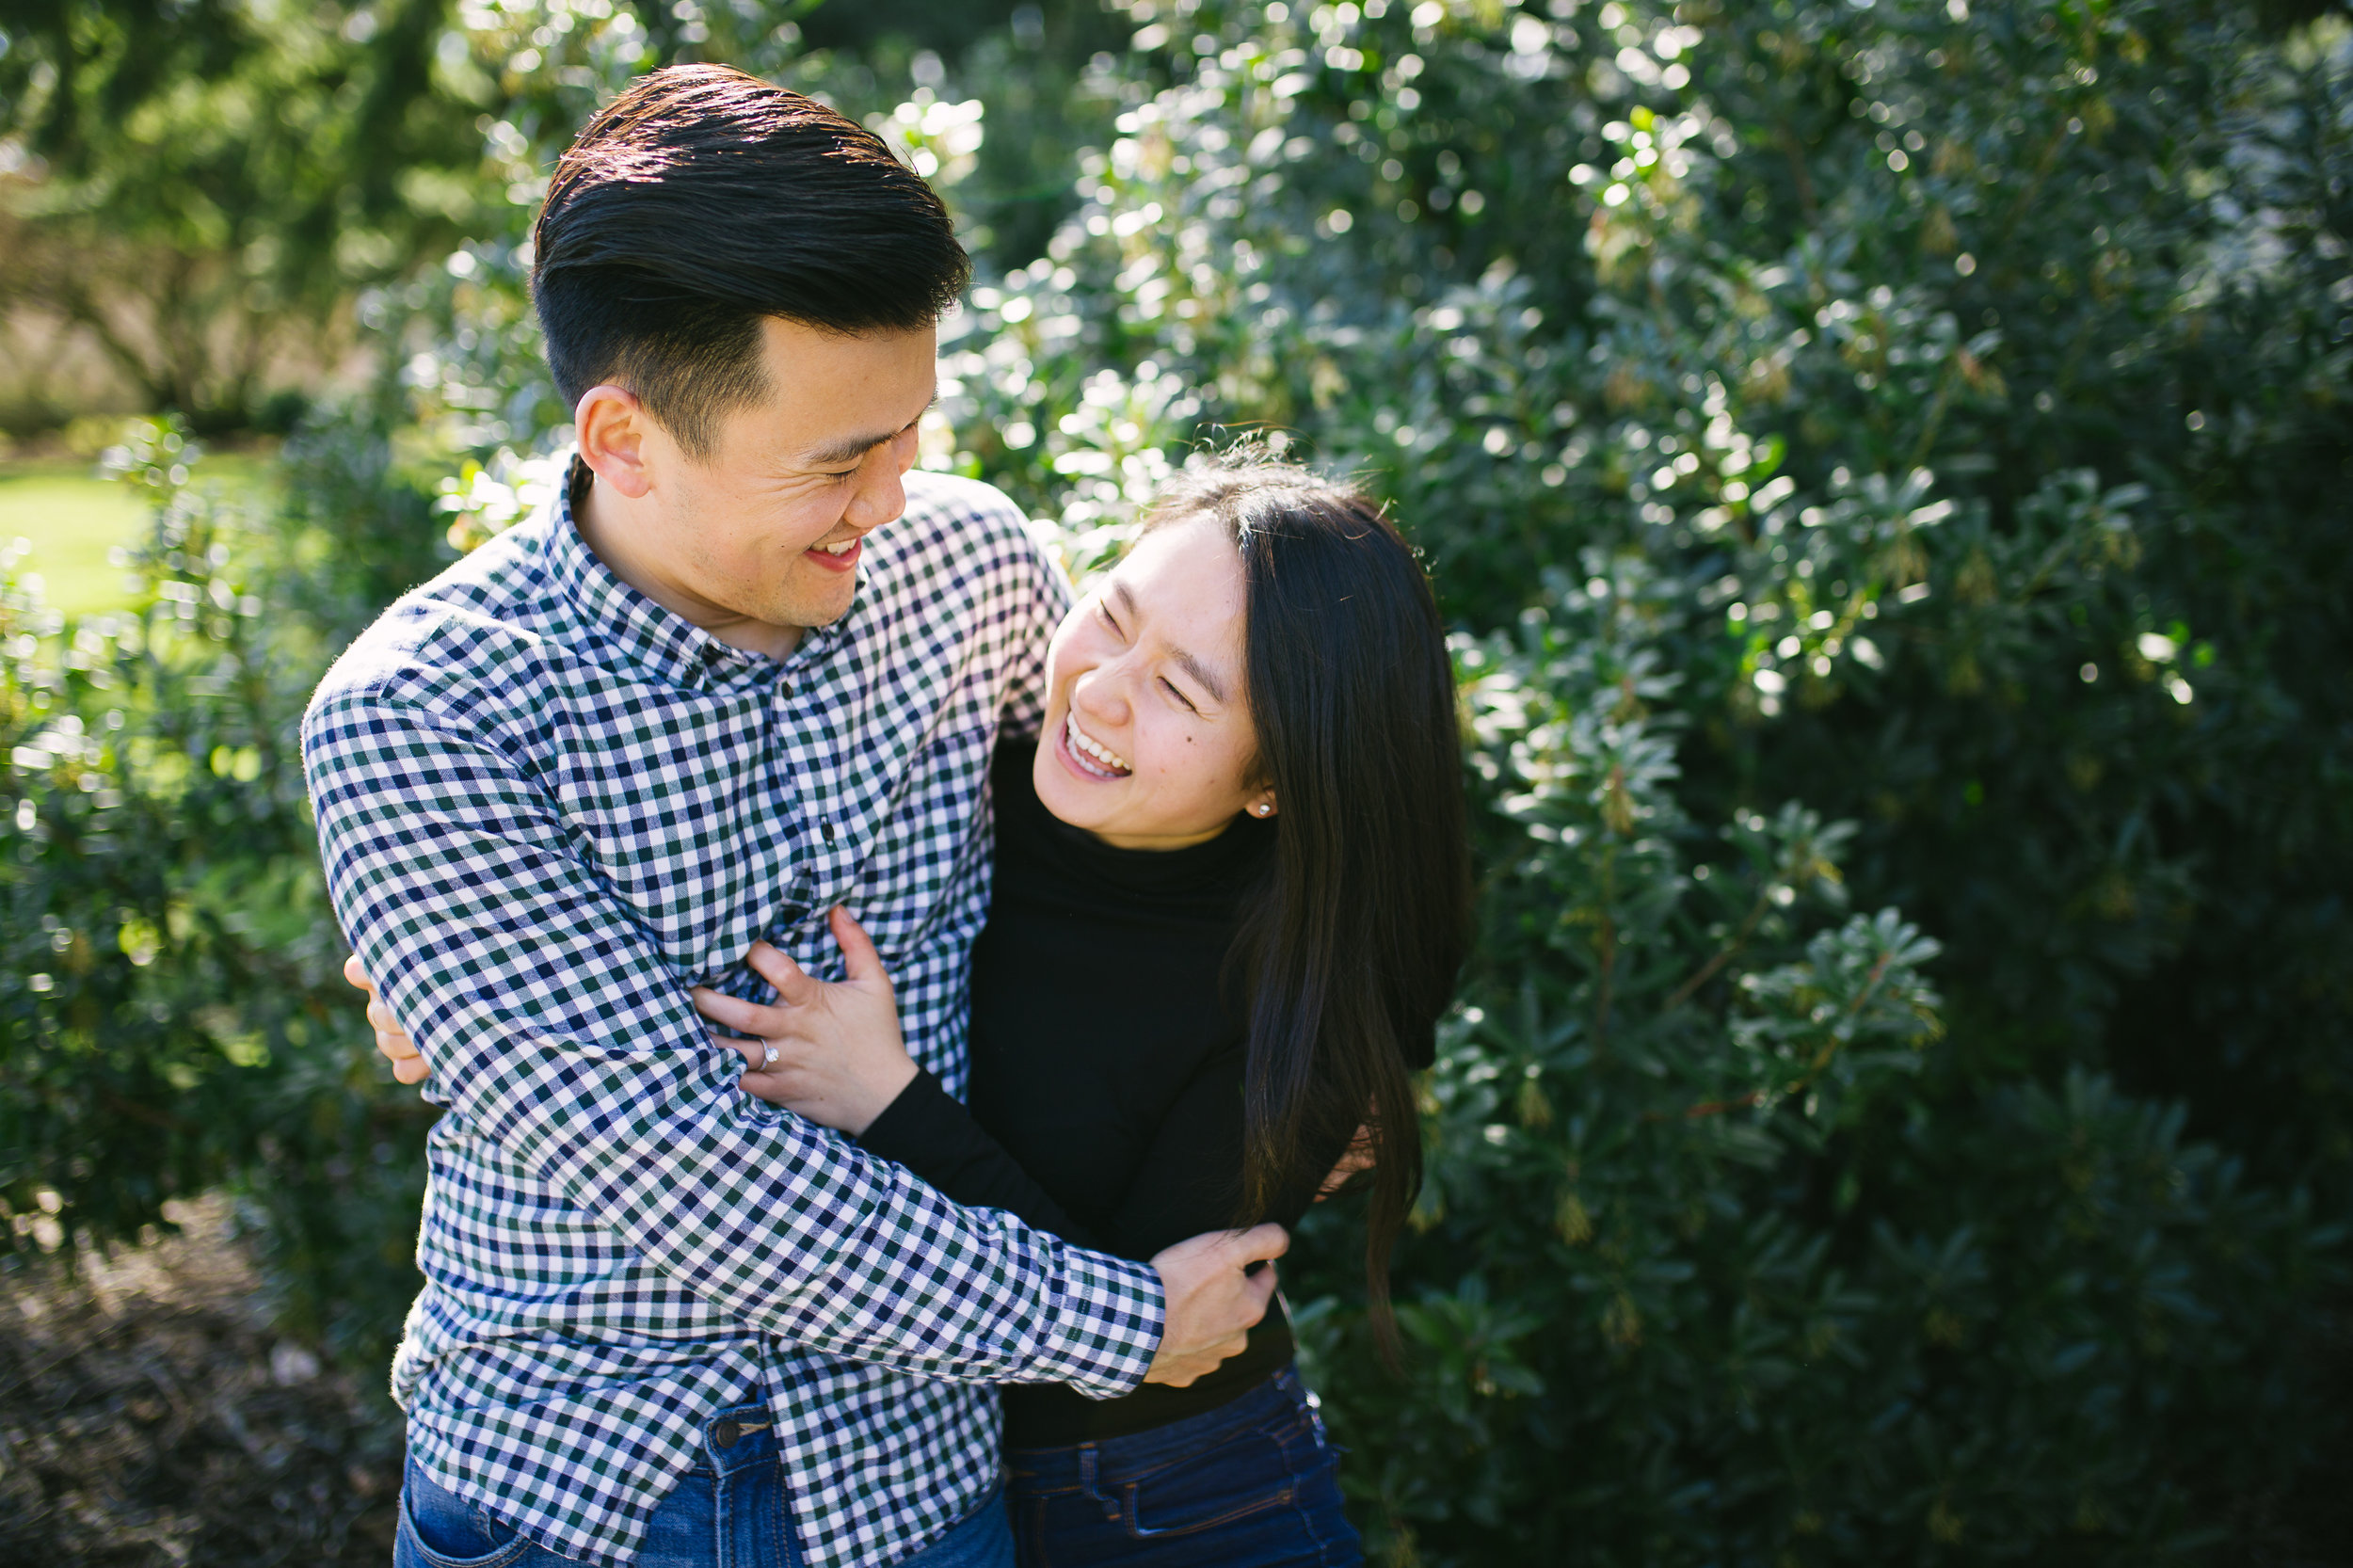 cathedral-park-engagement-photography-11.jpg